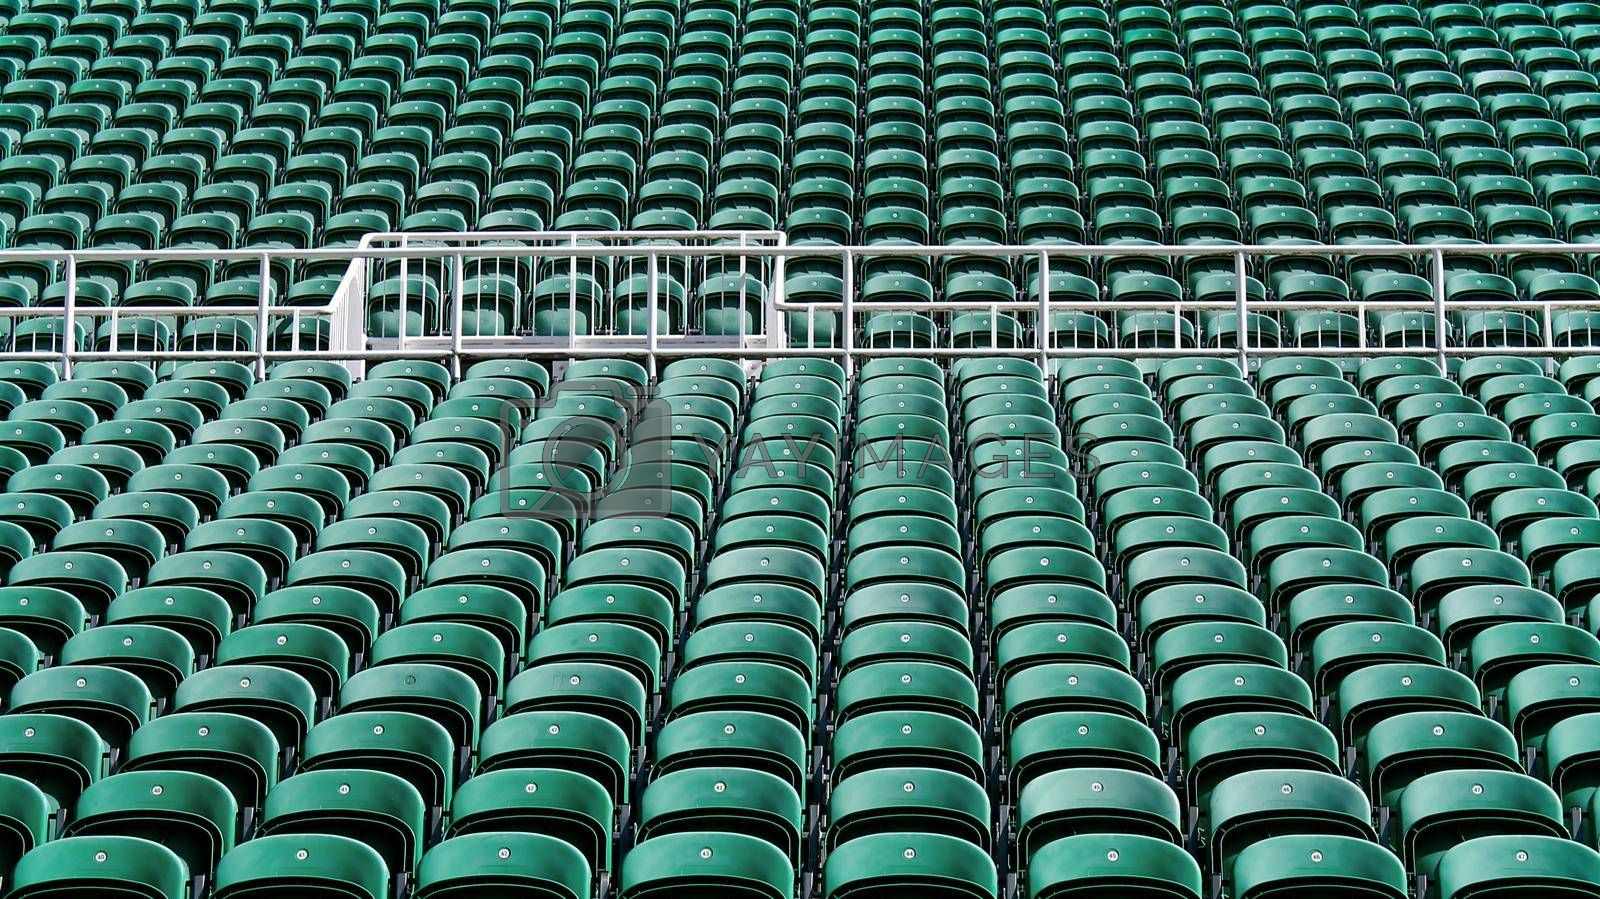 Royalty free image of Rows of stadium seating by speedfighter